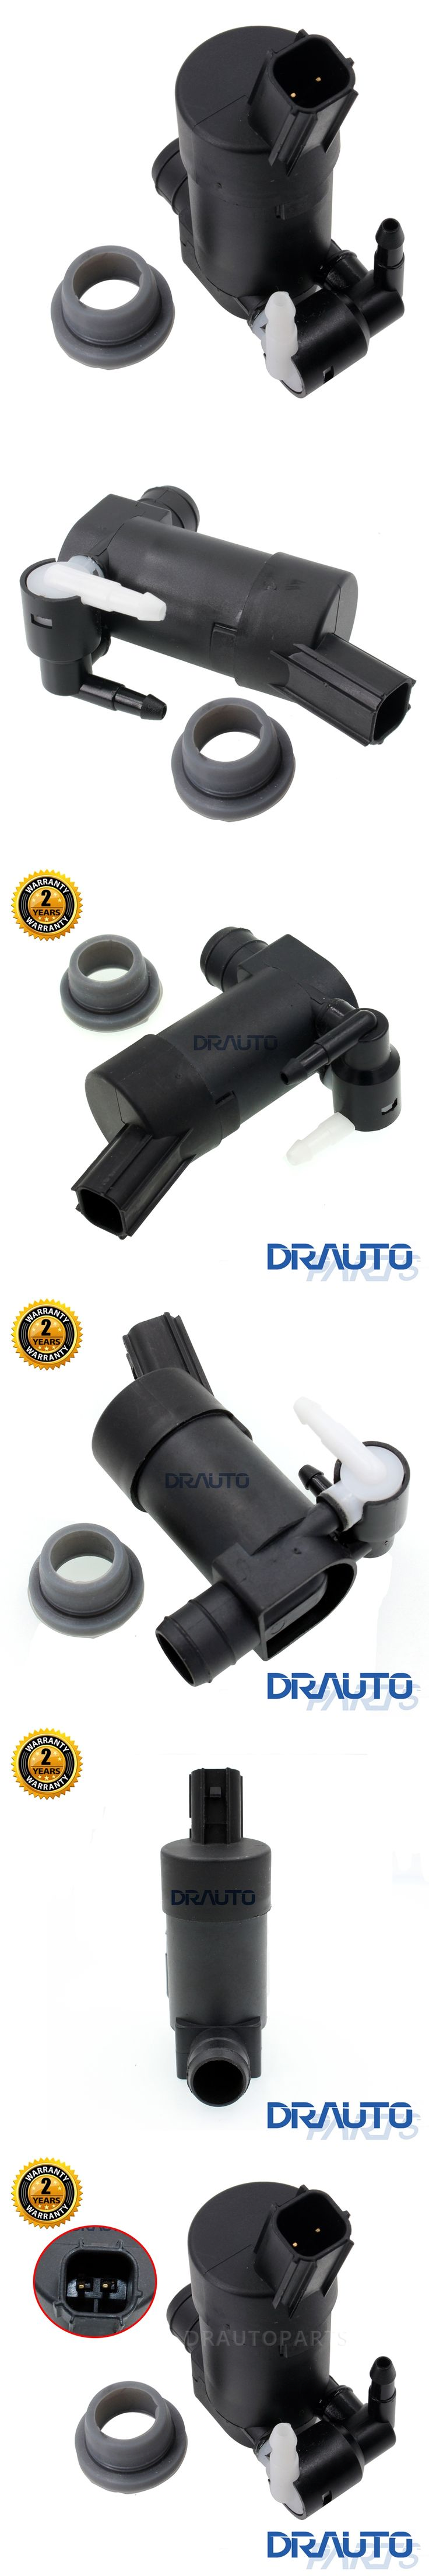 Fit for Ford Focus/S-Max/C-Max/MONDEO Mk III Windshield Washer Pump Part number 1S71-17K624-FE Front and Rear Windows